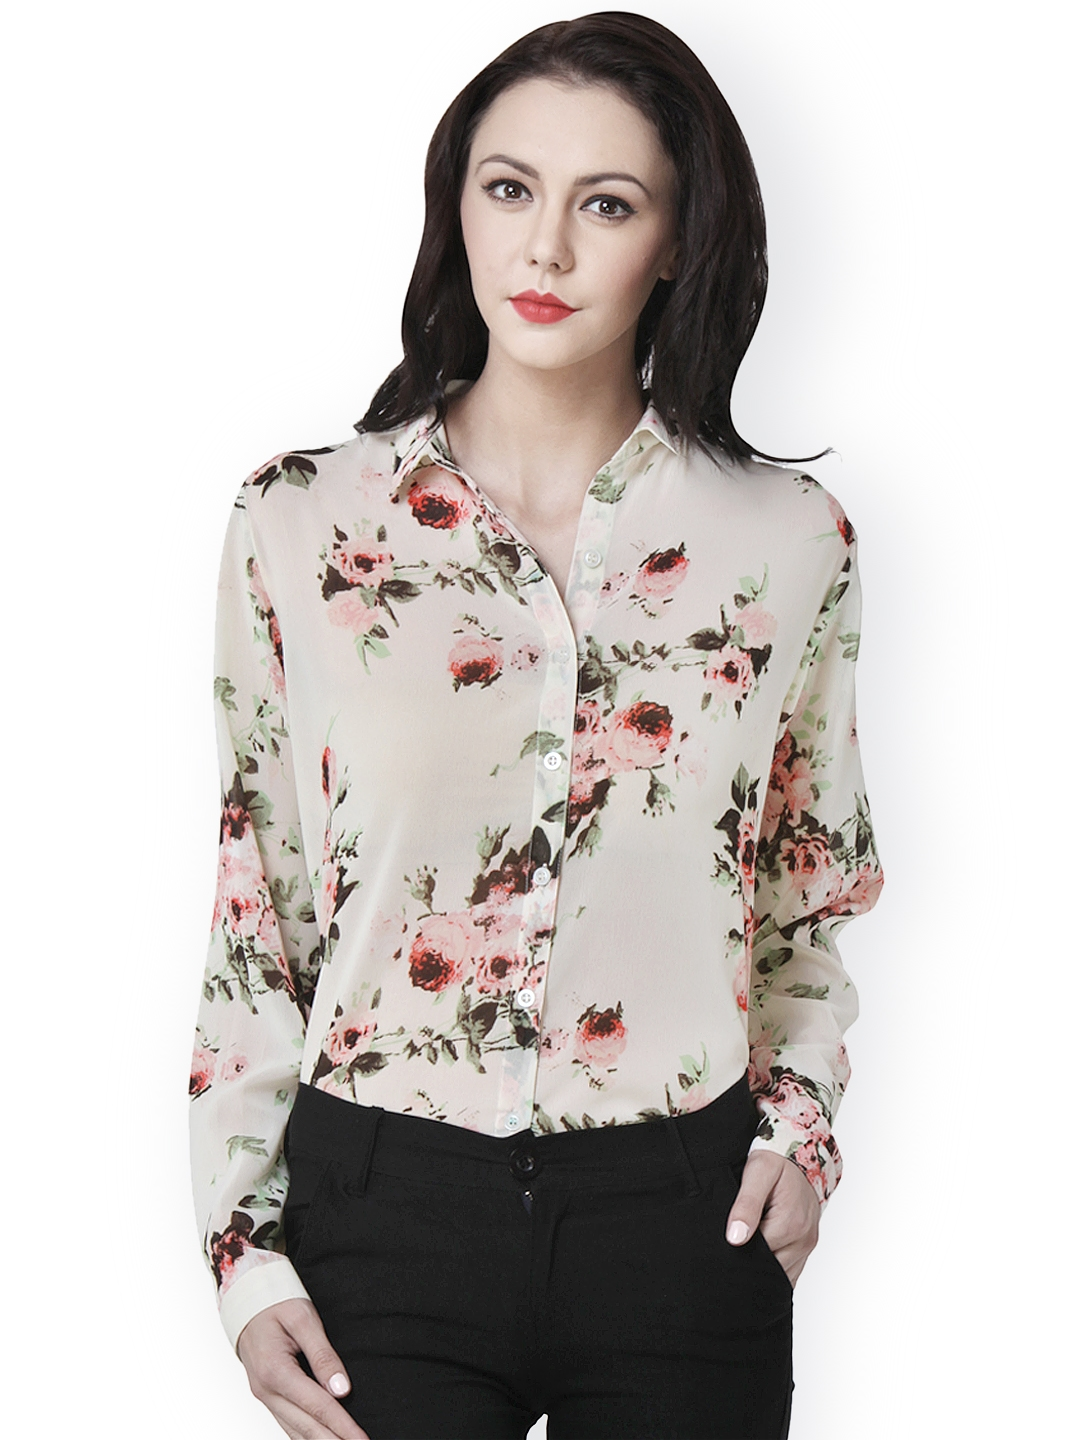 You can buy not only fashion women tops, but also cheap women tops online in this page. Whether you need a formal blouse to join a work interview, you need a luxurious coat to meet your old friends, or you need a chic sweater to go out with your boyfriend, the .